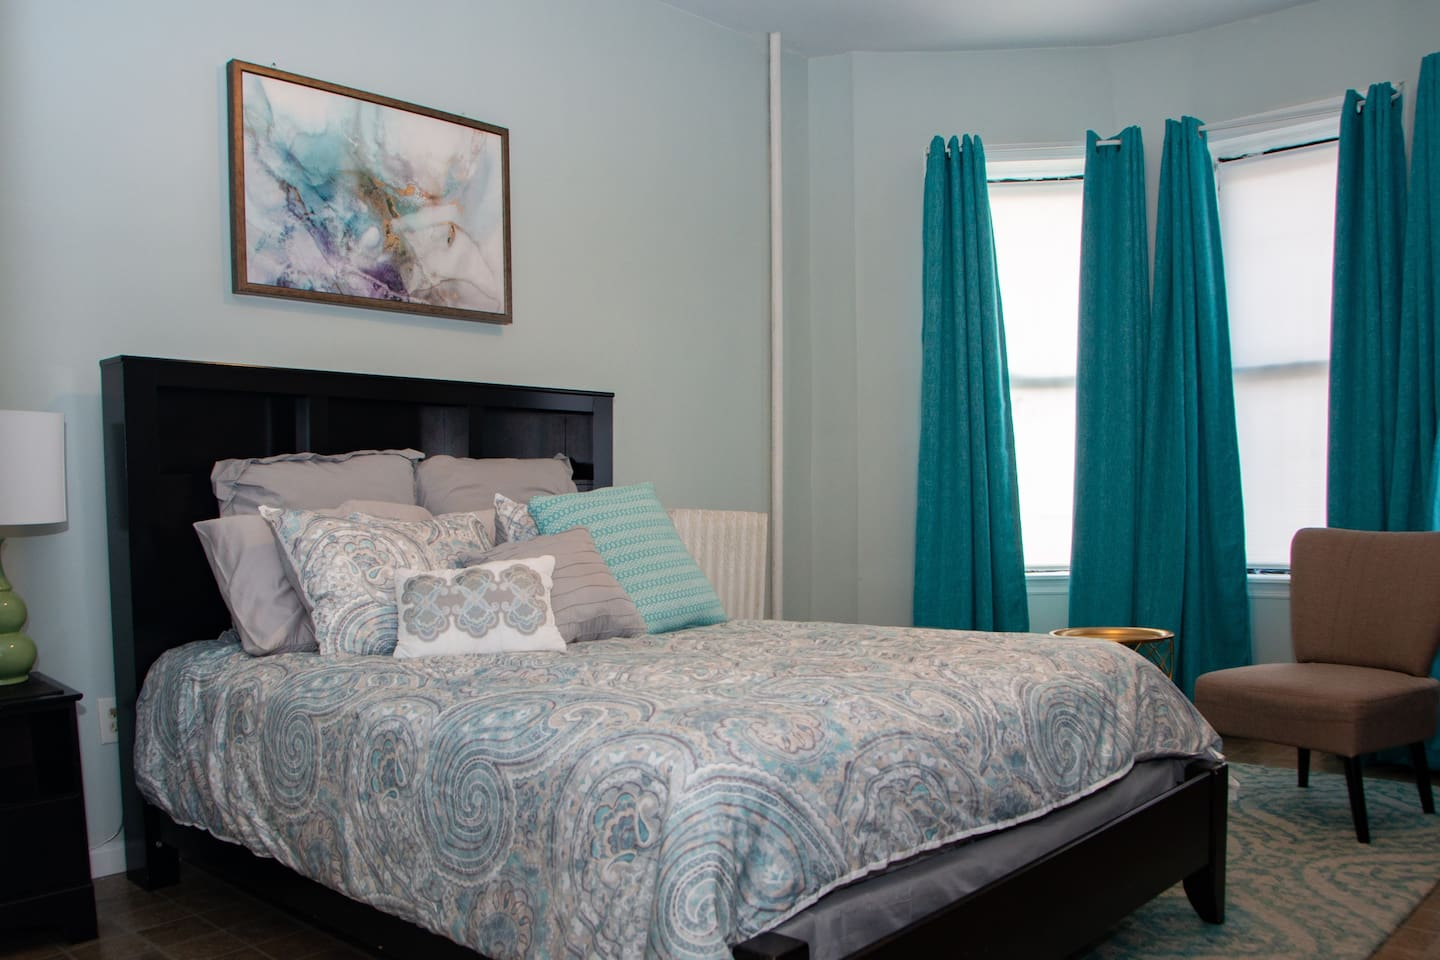 Unwind in this peaceful, relaxing bedroom equipped with ample heating, natural light, and lots of channels and Netflix/Hulu choices to choose from!